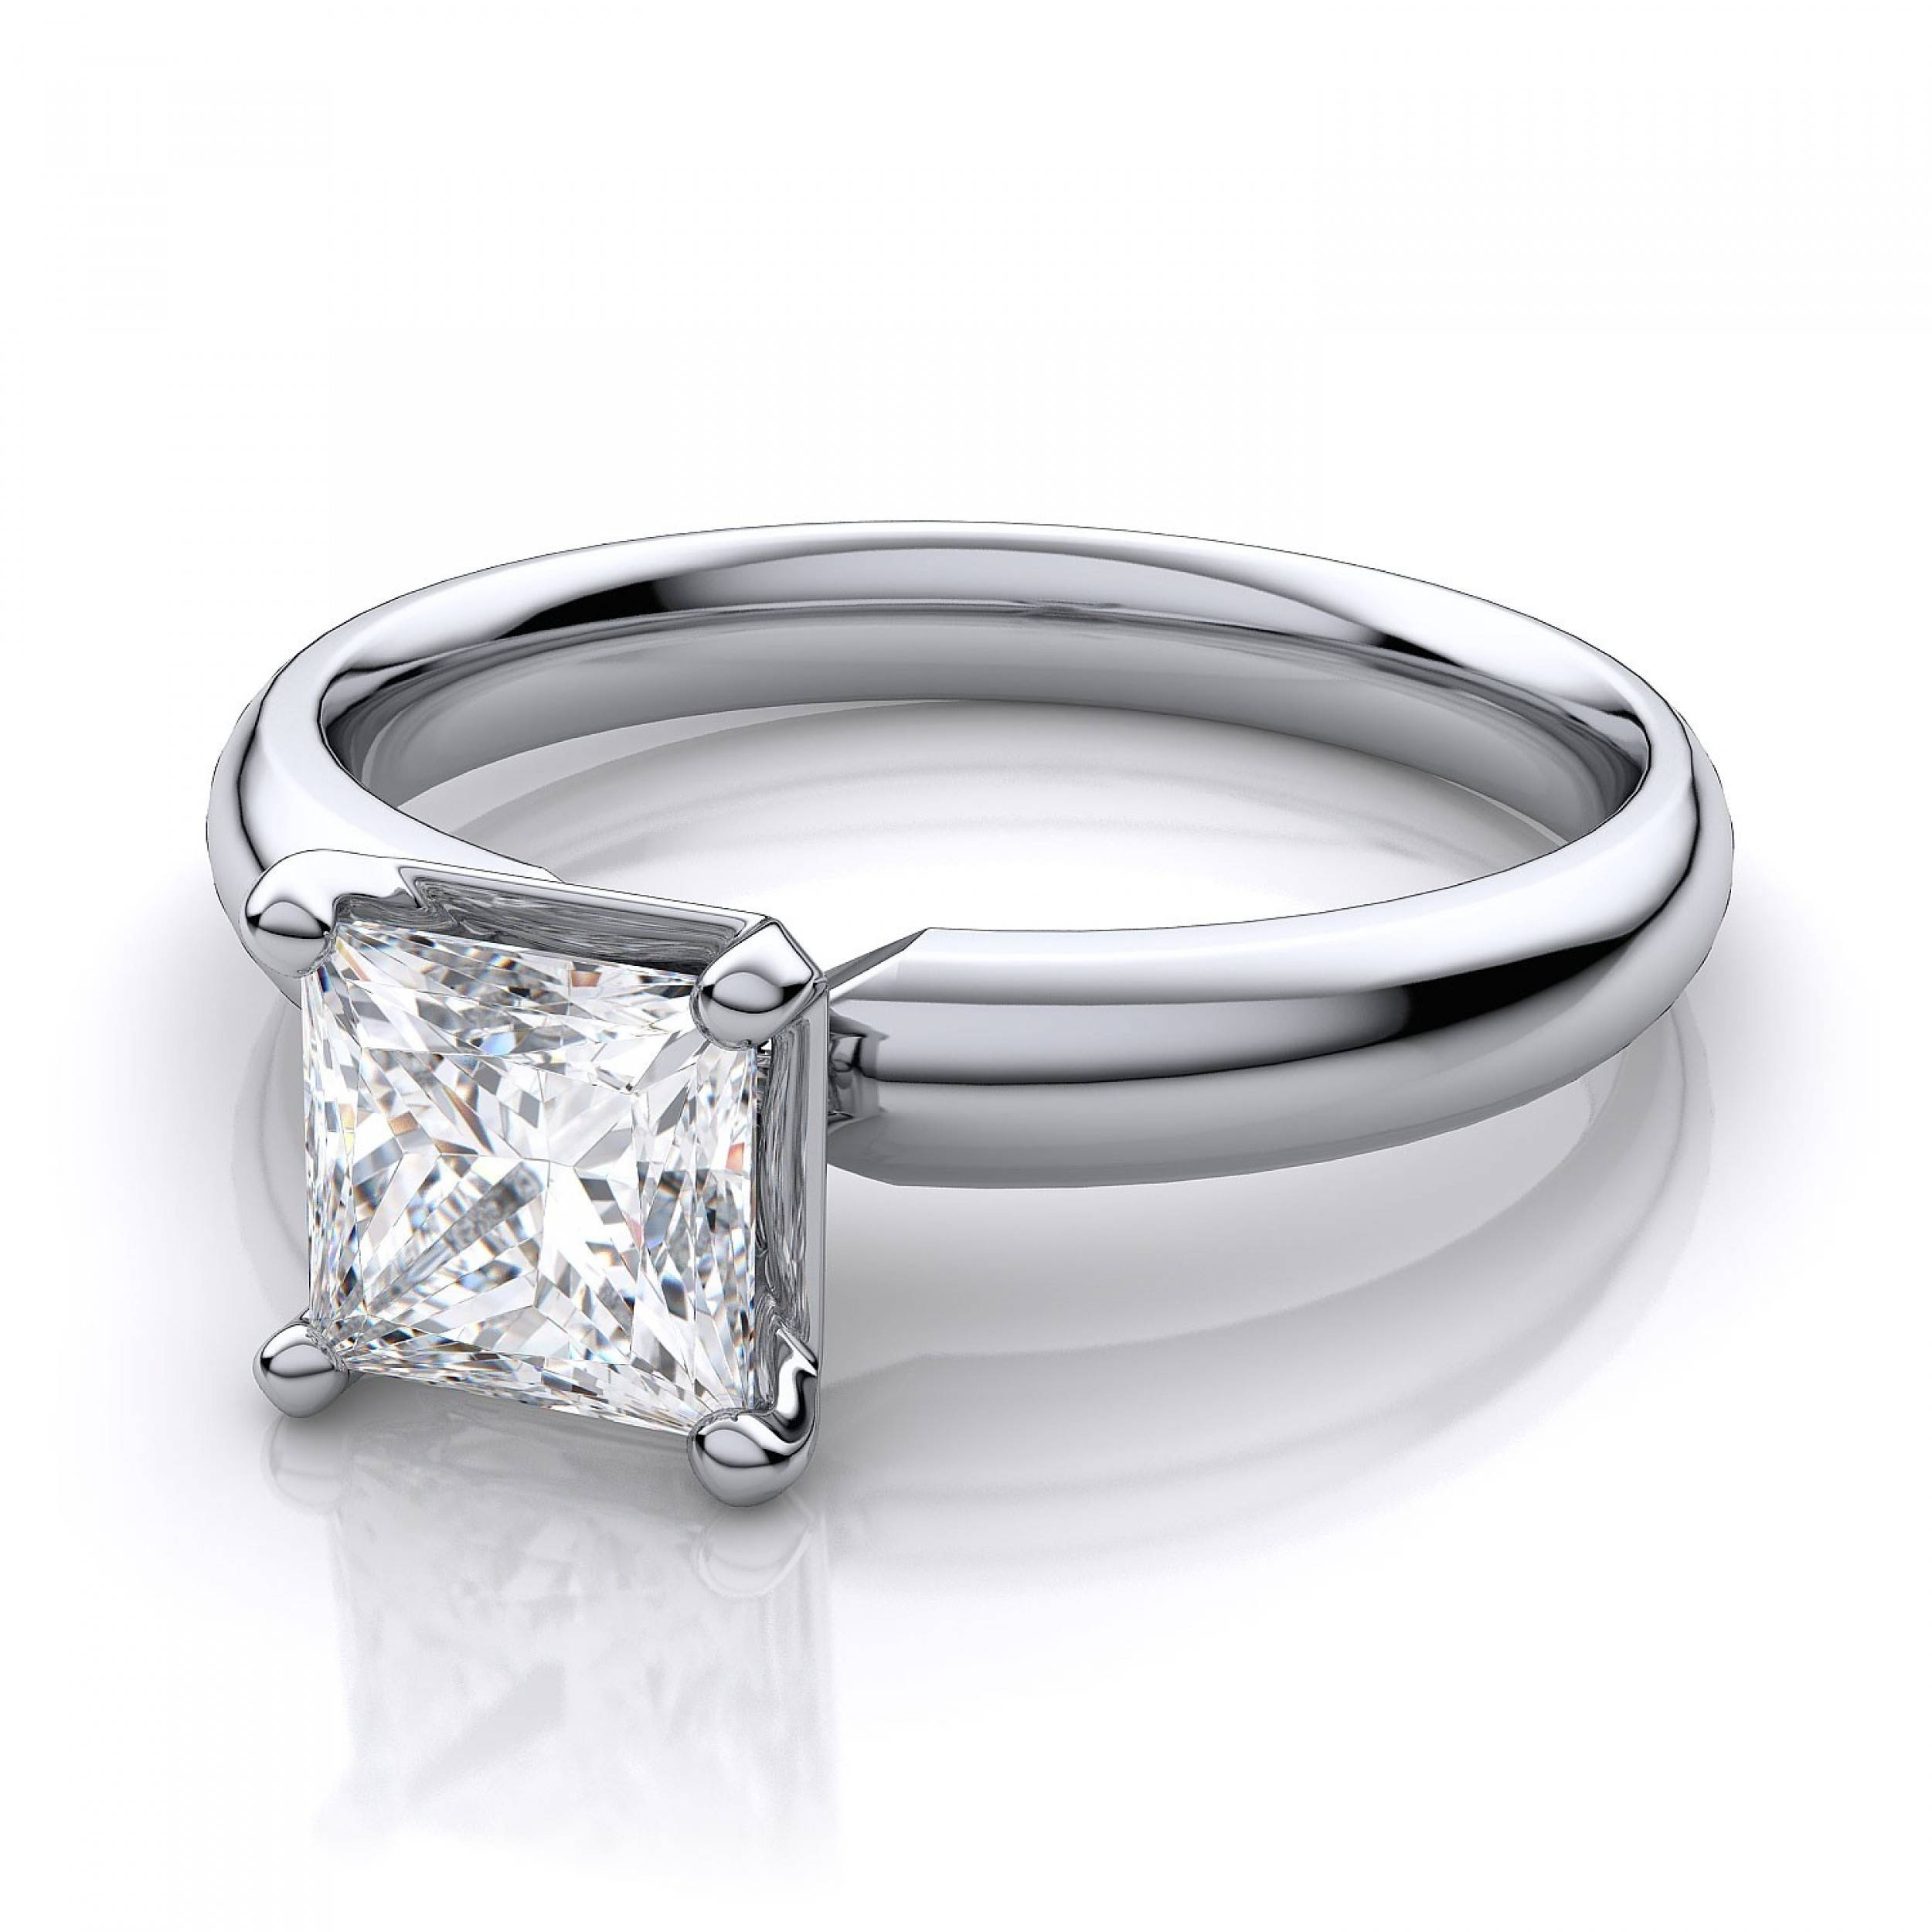 Mm Princess Cut Solitaire Diamond Ring Setting – 14k White Gold Regarding Diamond Wedding Rings Settings (View 6 of 15)